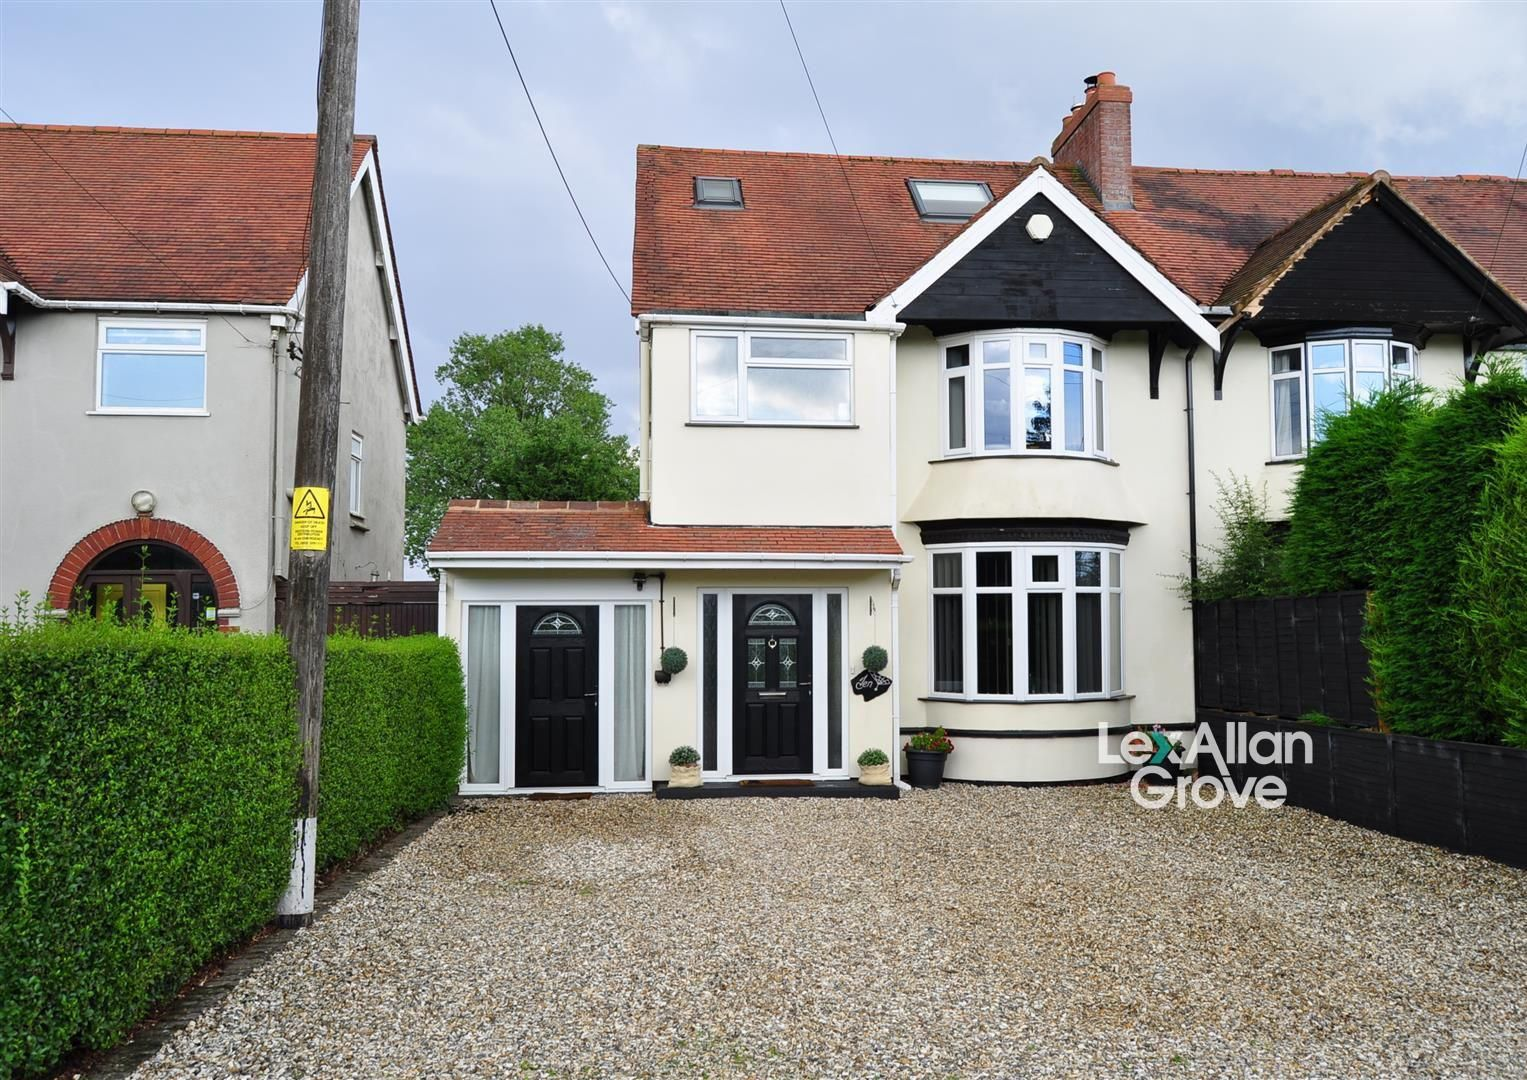 4 bed semi-detached for sale in Romsley, B62